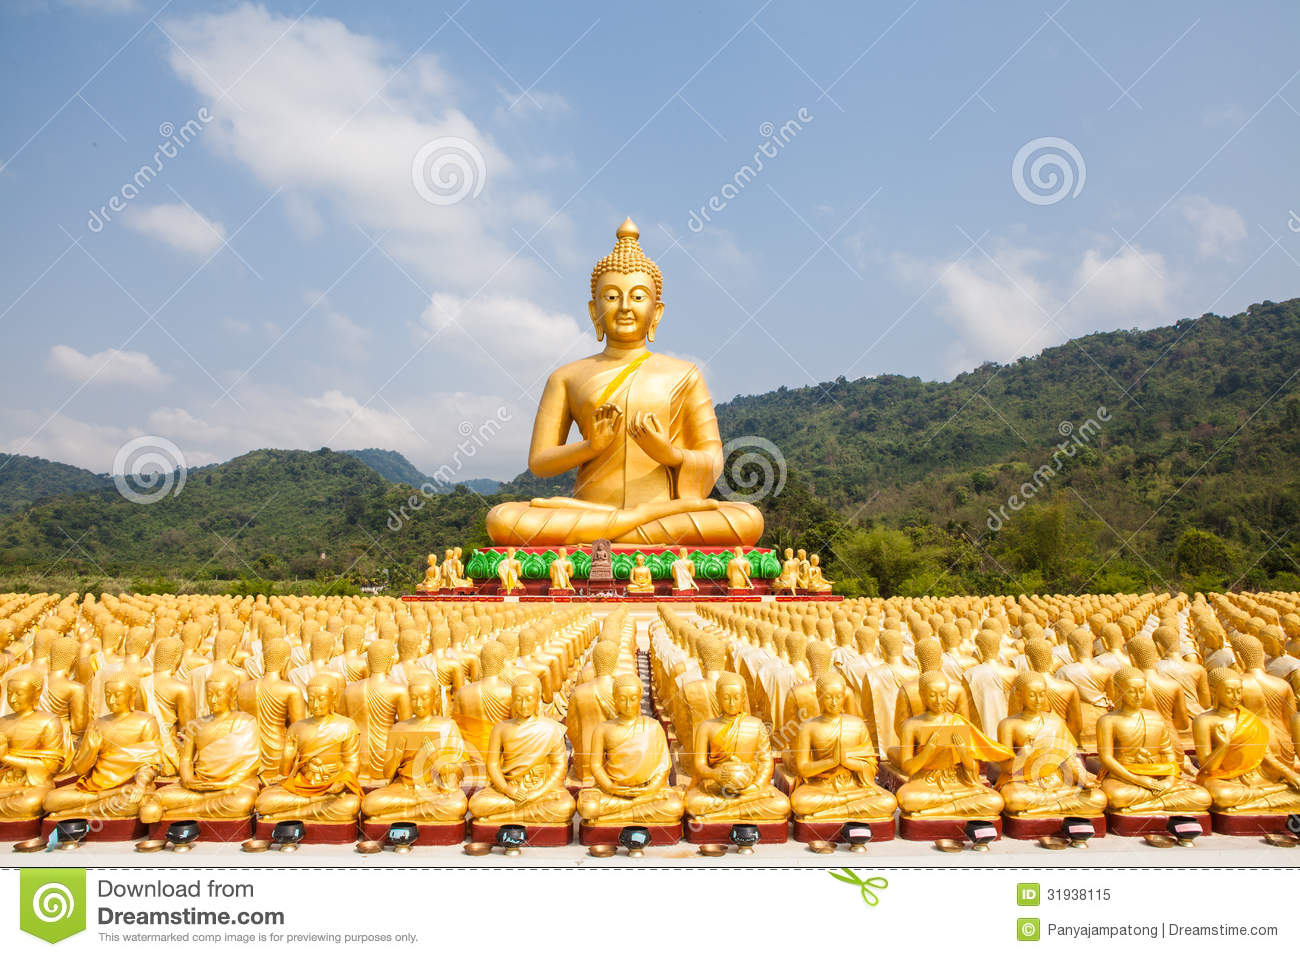 buddha with 1250 disciples statue royalty free stock photo image 31938115. Black Bedroom Furniture Sets. Home Design Ideas